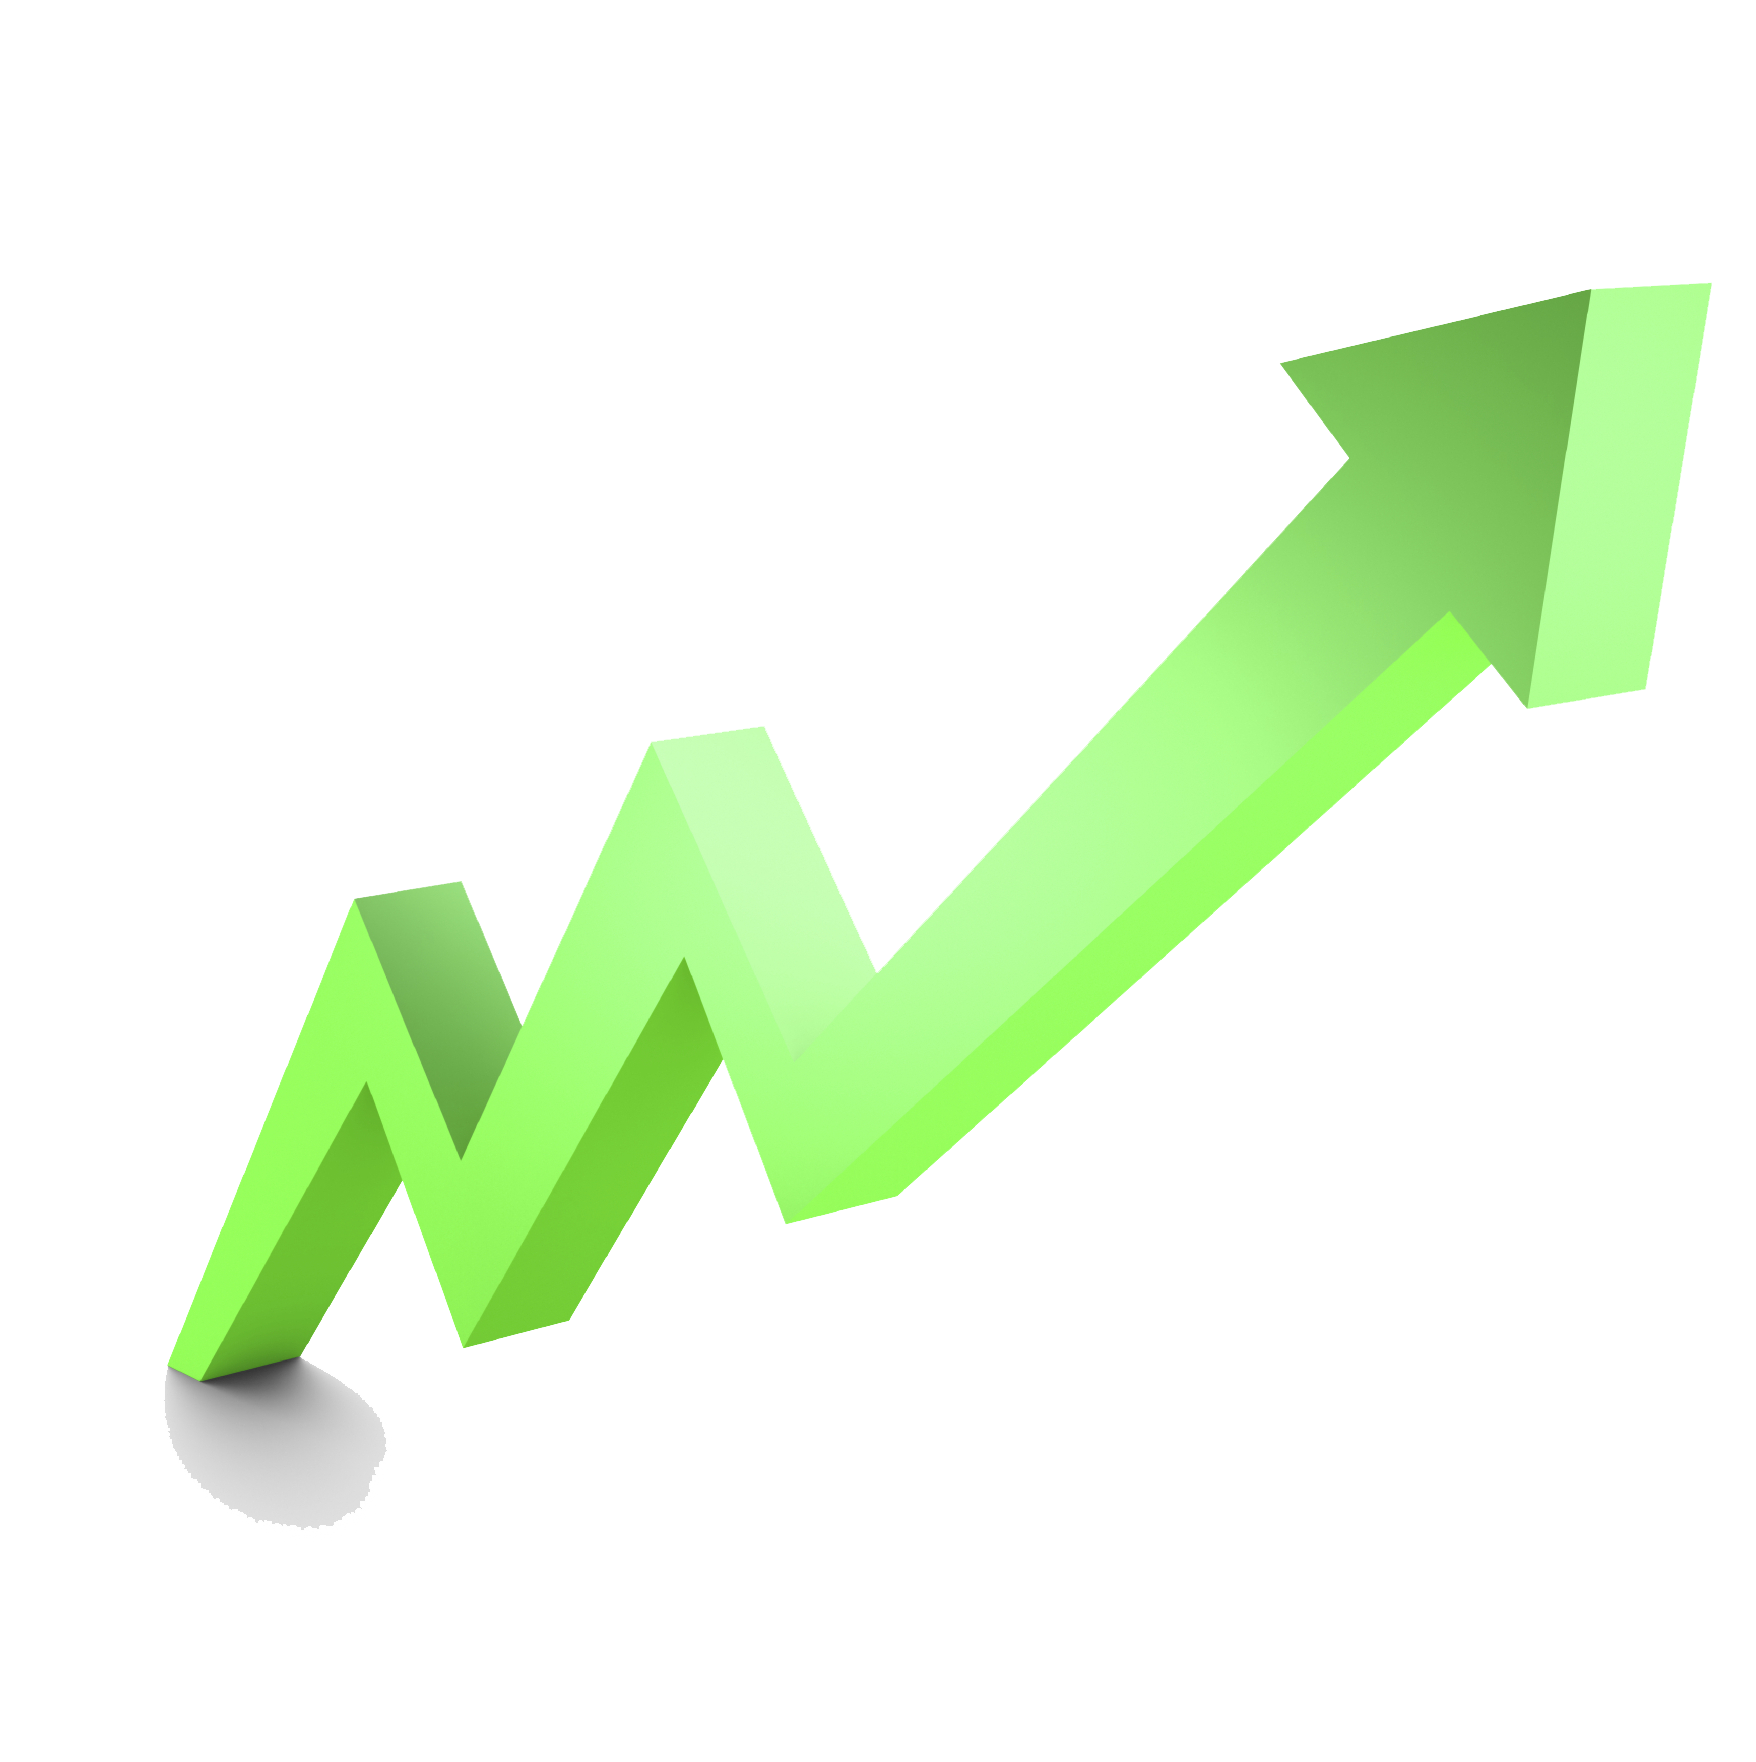 Download Stock Market Graph Up File HQ PNG Image.